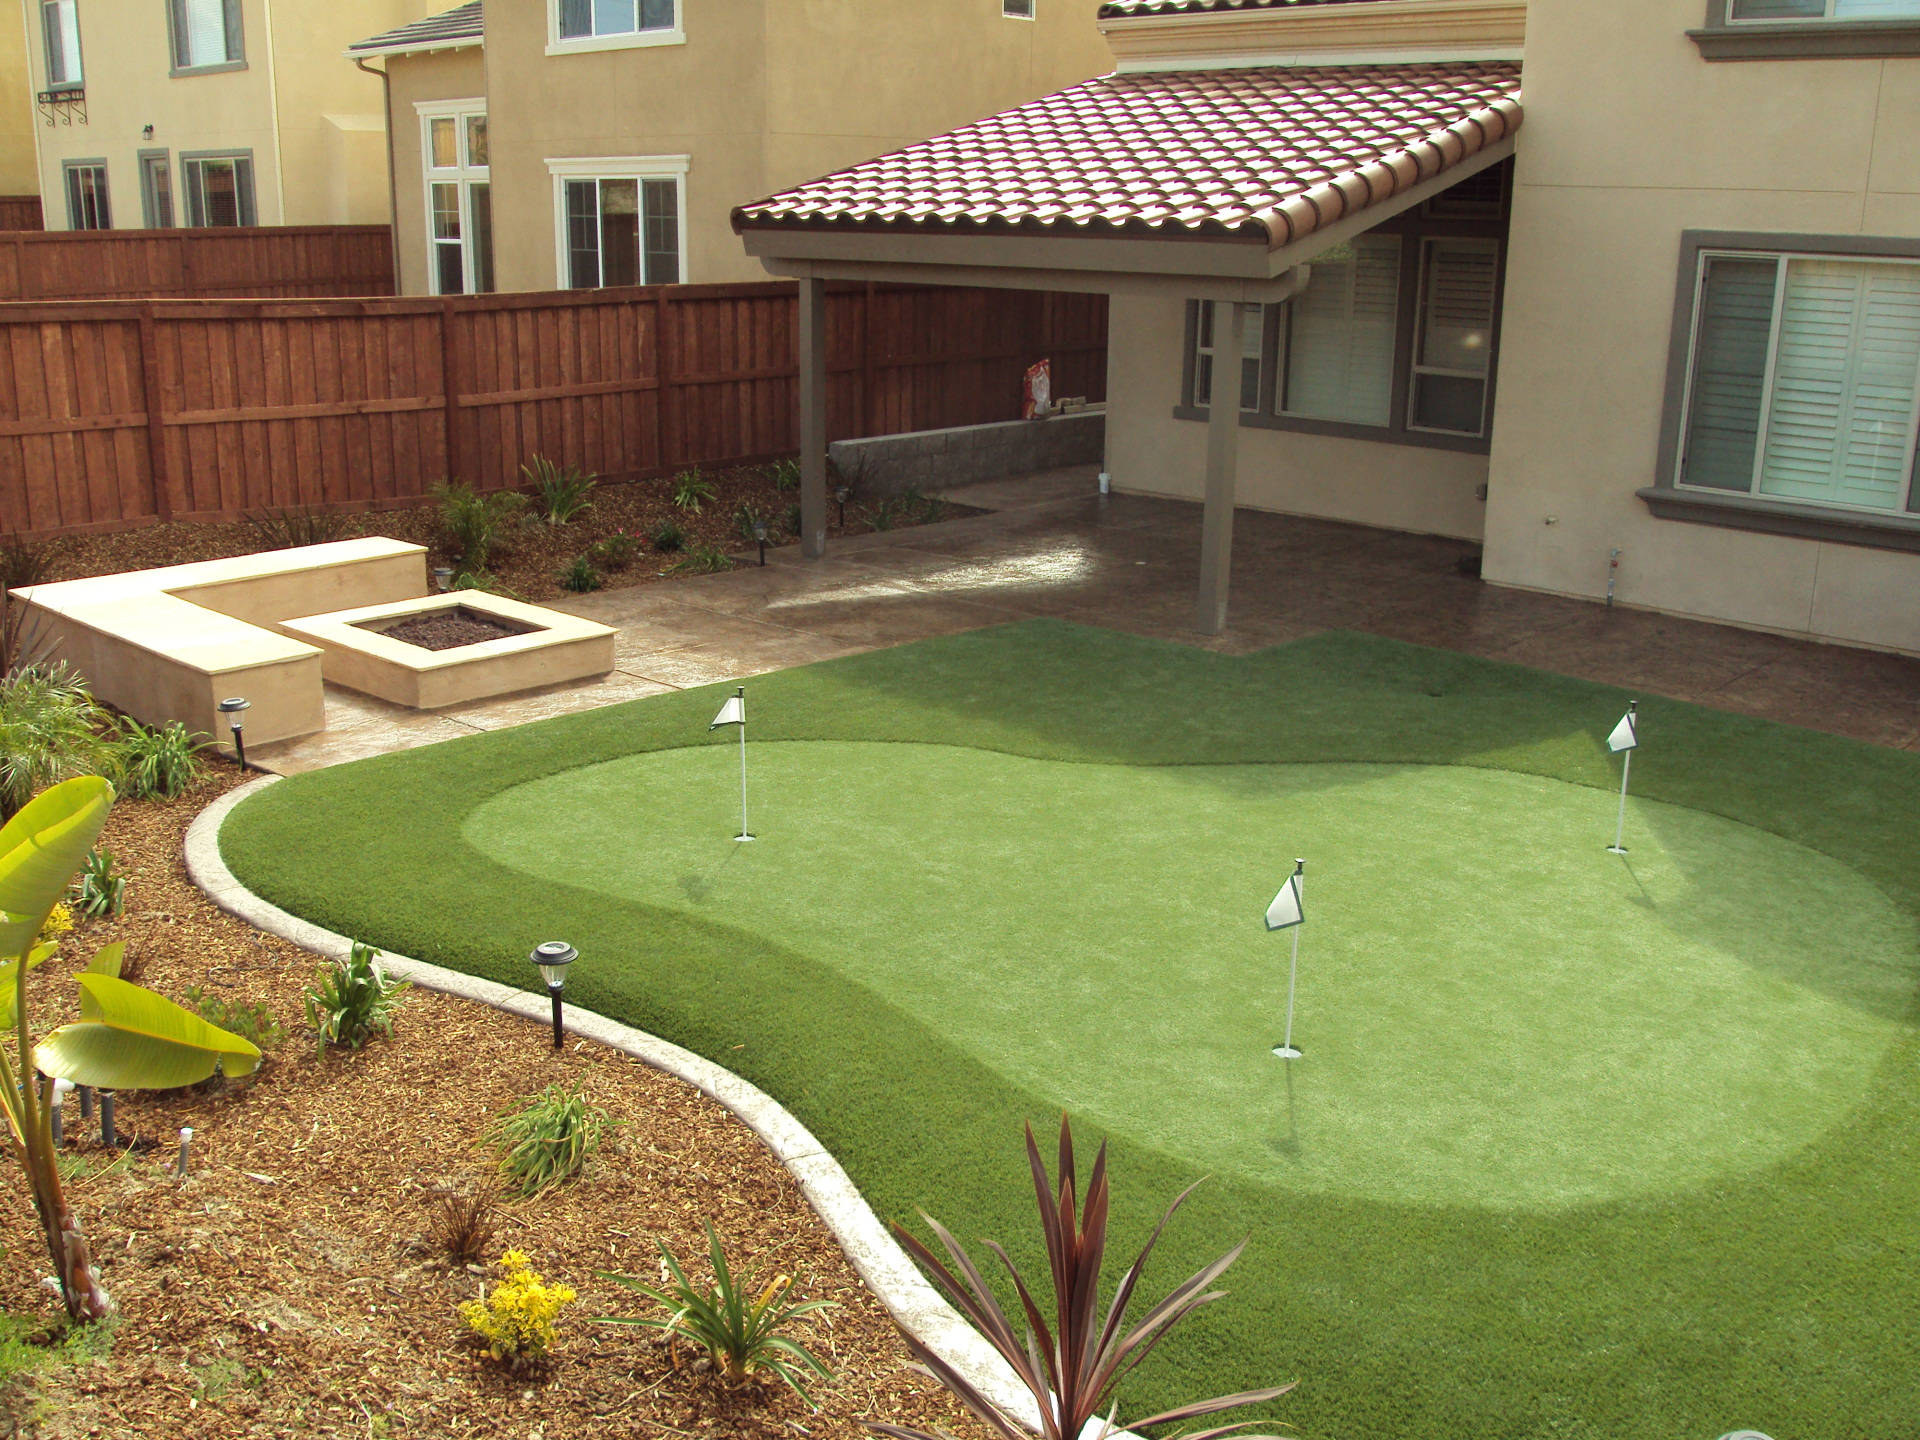 Chula Vista putting Green, Otay Ranch synthetic turf, Outdoor Kitchens chula vista, patio covers chula vista, aluminum patio covers, outdoor entertainment areas,